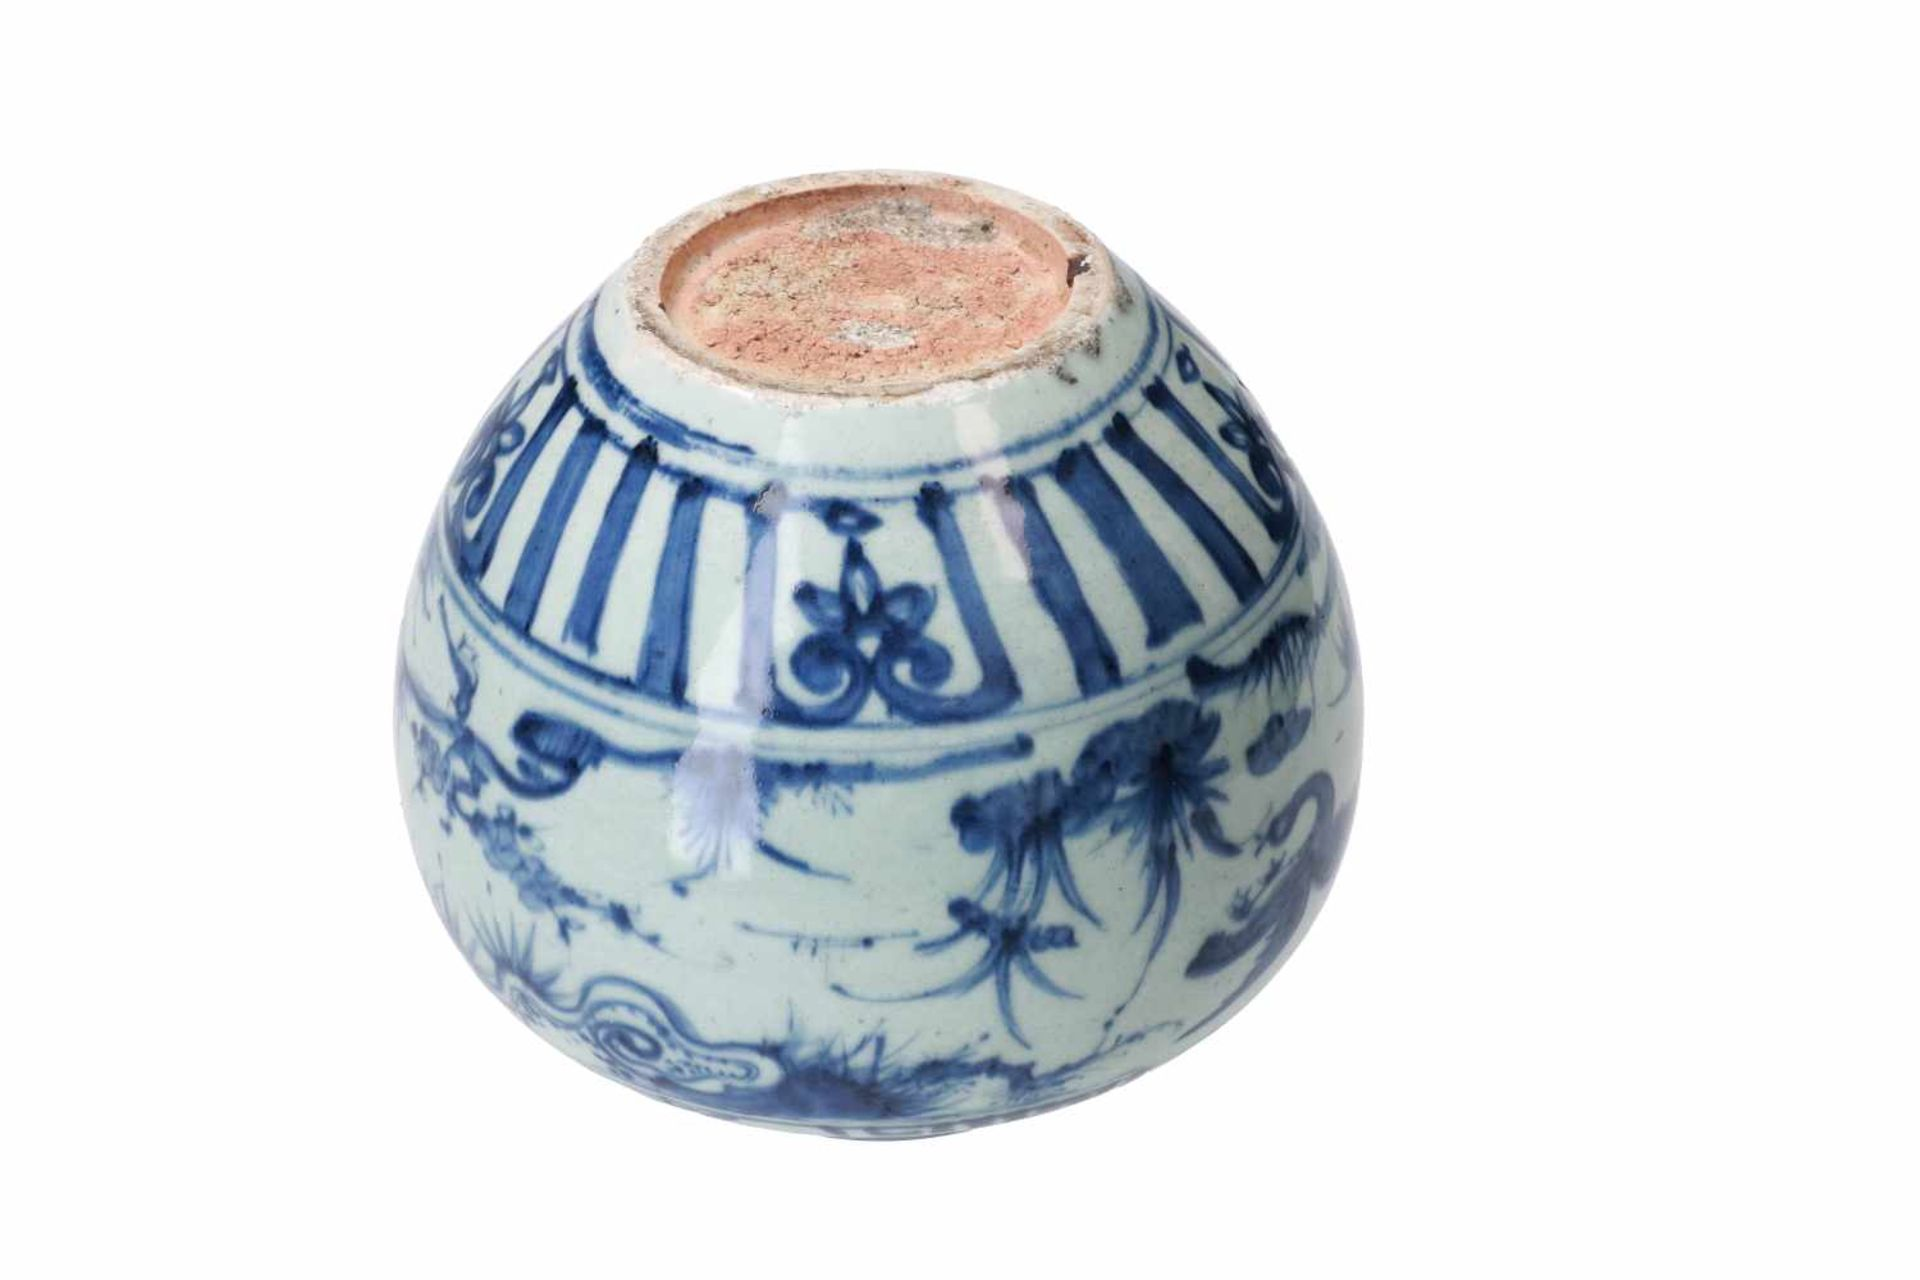 A blue and white porcelain jar, decorated with ducks, peaches and flowers. Unmarked. China, Wanli. - Bild 6 aus 7